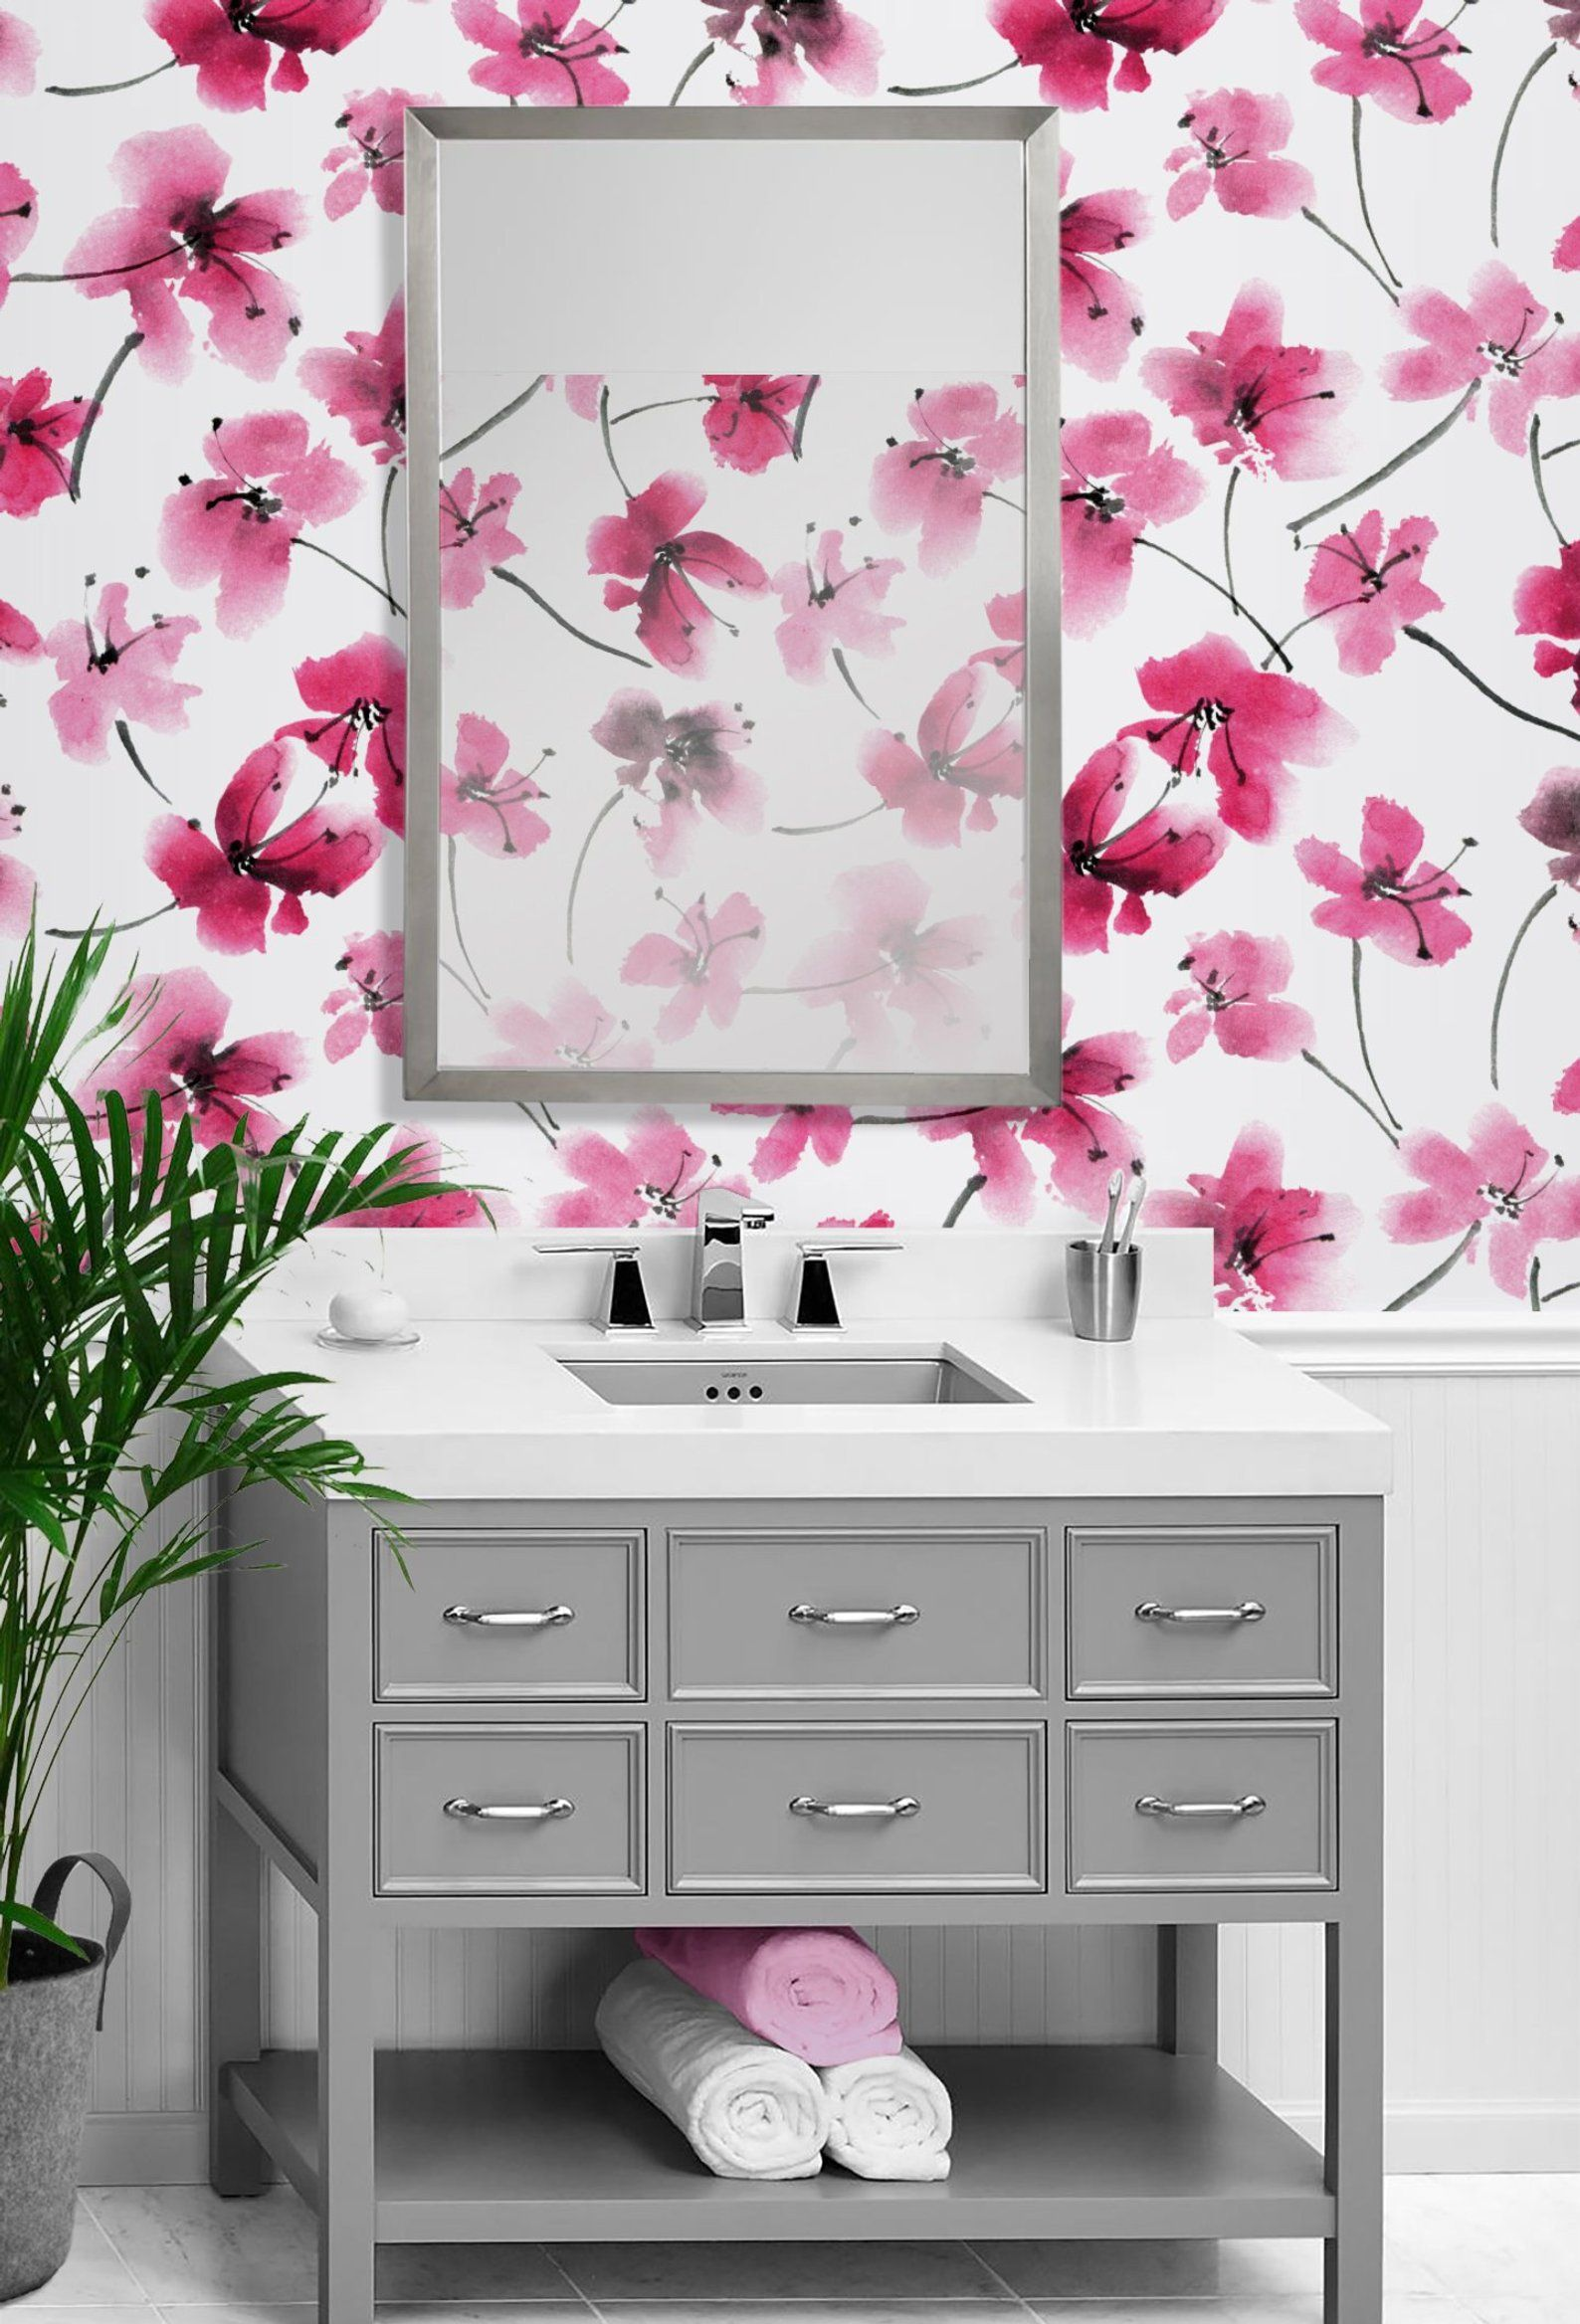 Watercolor Floral Repositionable Wallpaper Peel and Stick